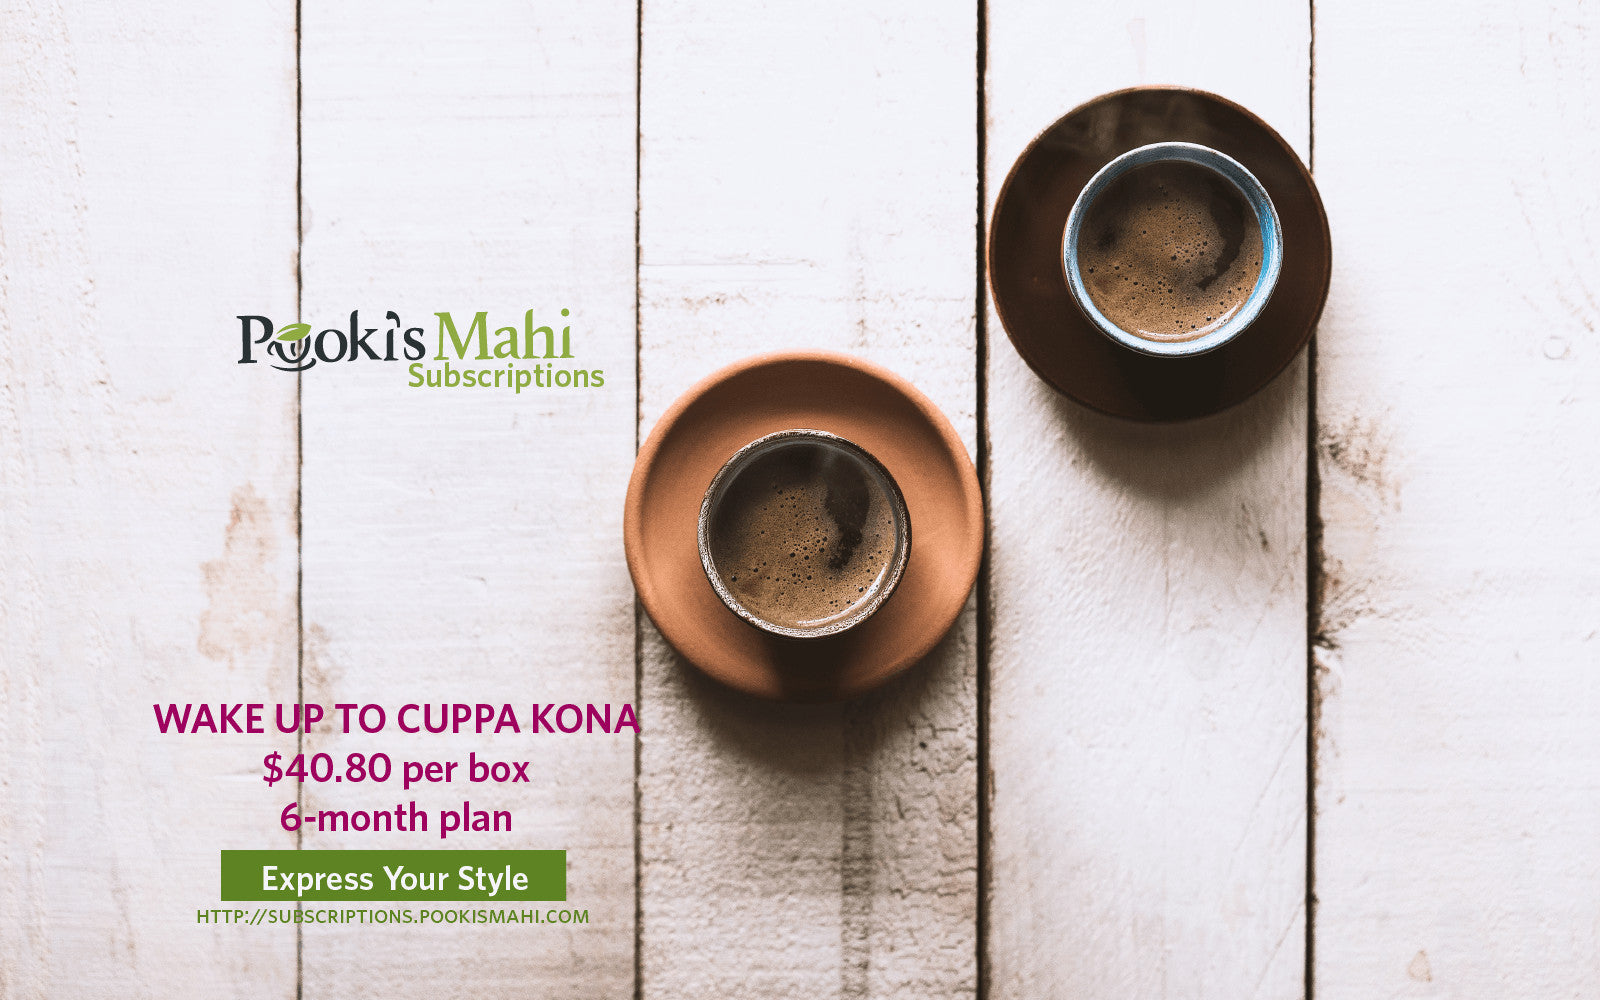 Save $14+ on 6-month Pooki's Mahi Kona coffee pods subscriptions.